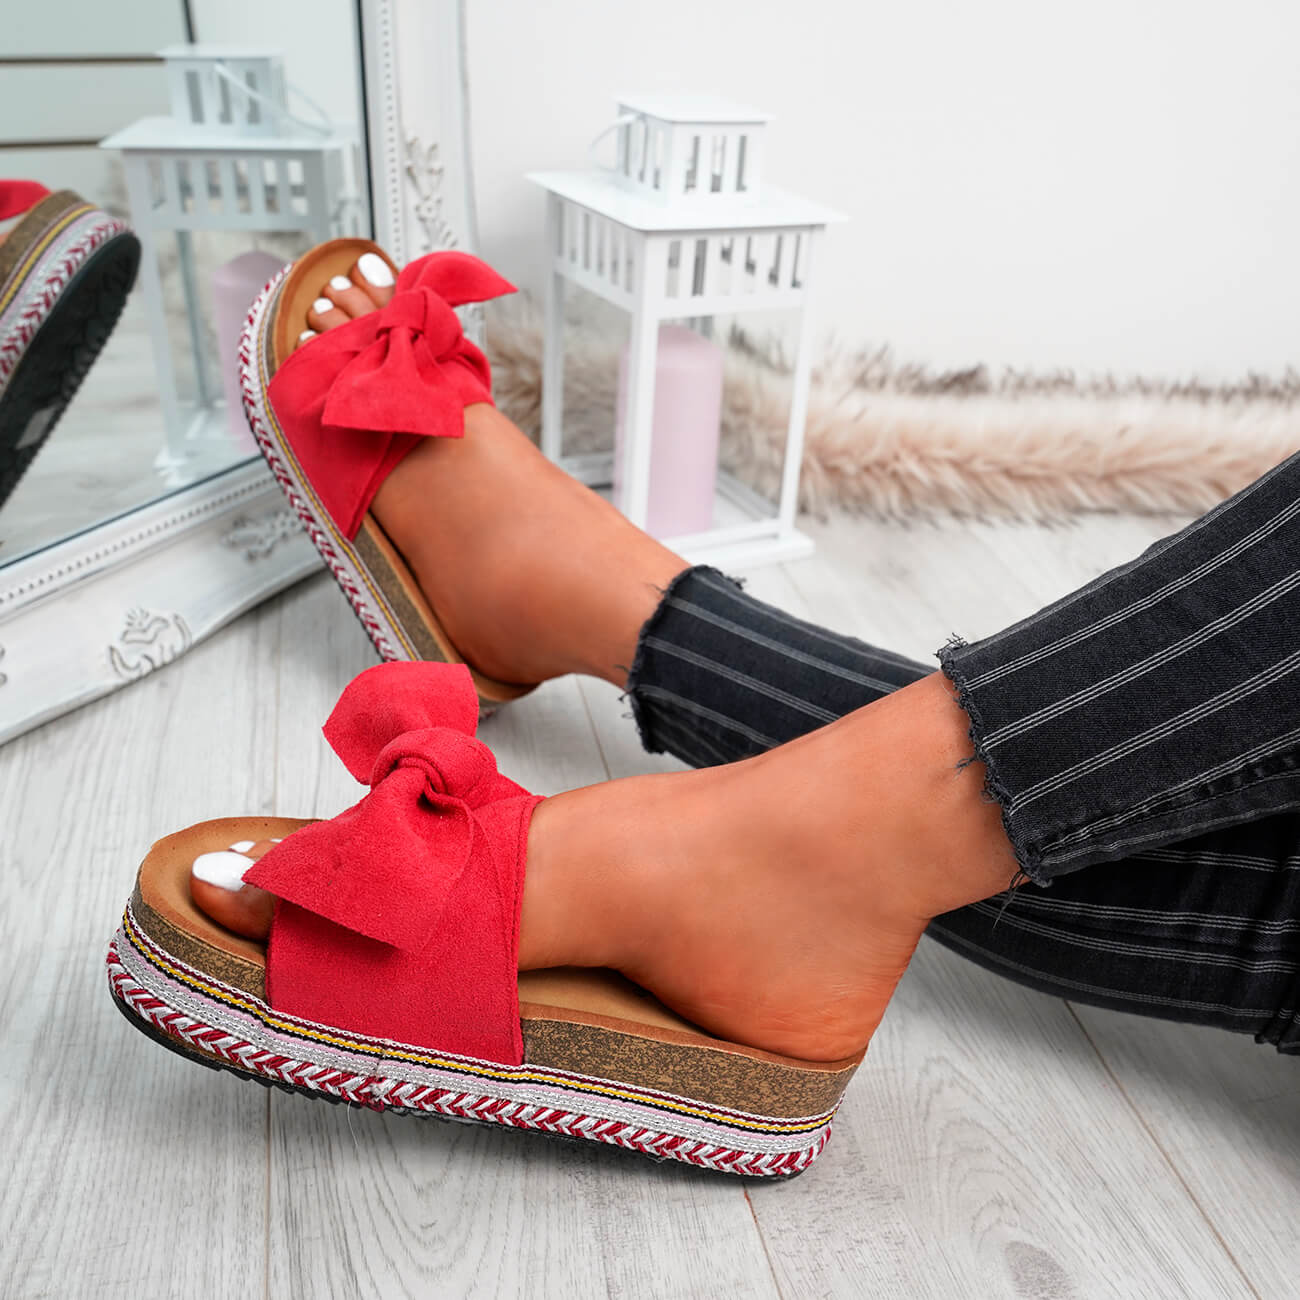 WOMENS-LADIES-BOW-SLIDERS-SLIP-ON-FLATFORMS-SUMMER-PARTY-SANDALS-SHOES-SIZE thumbnail 24